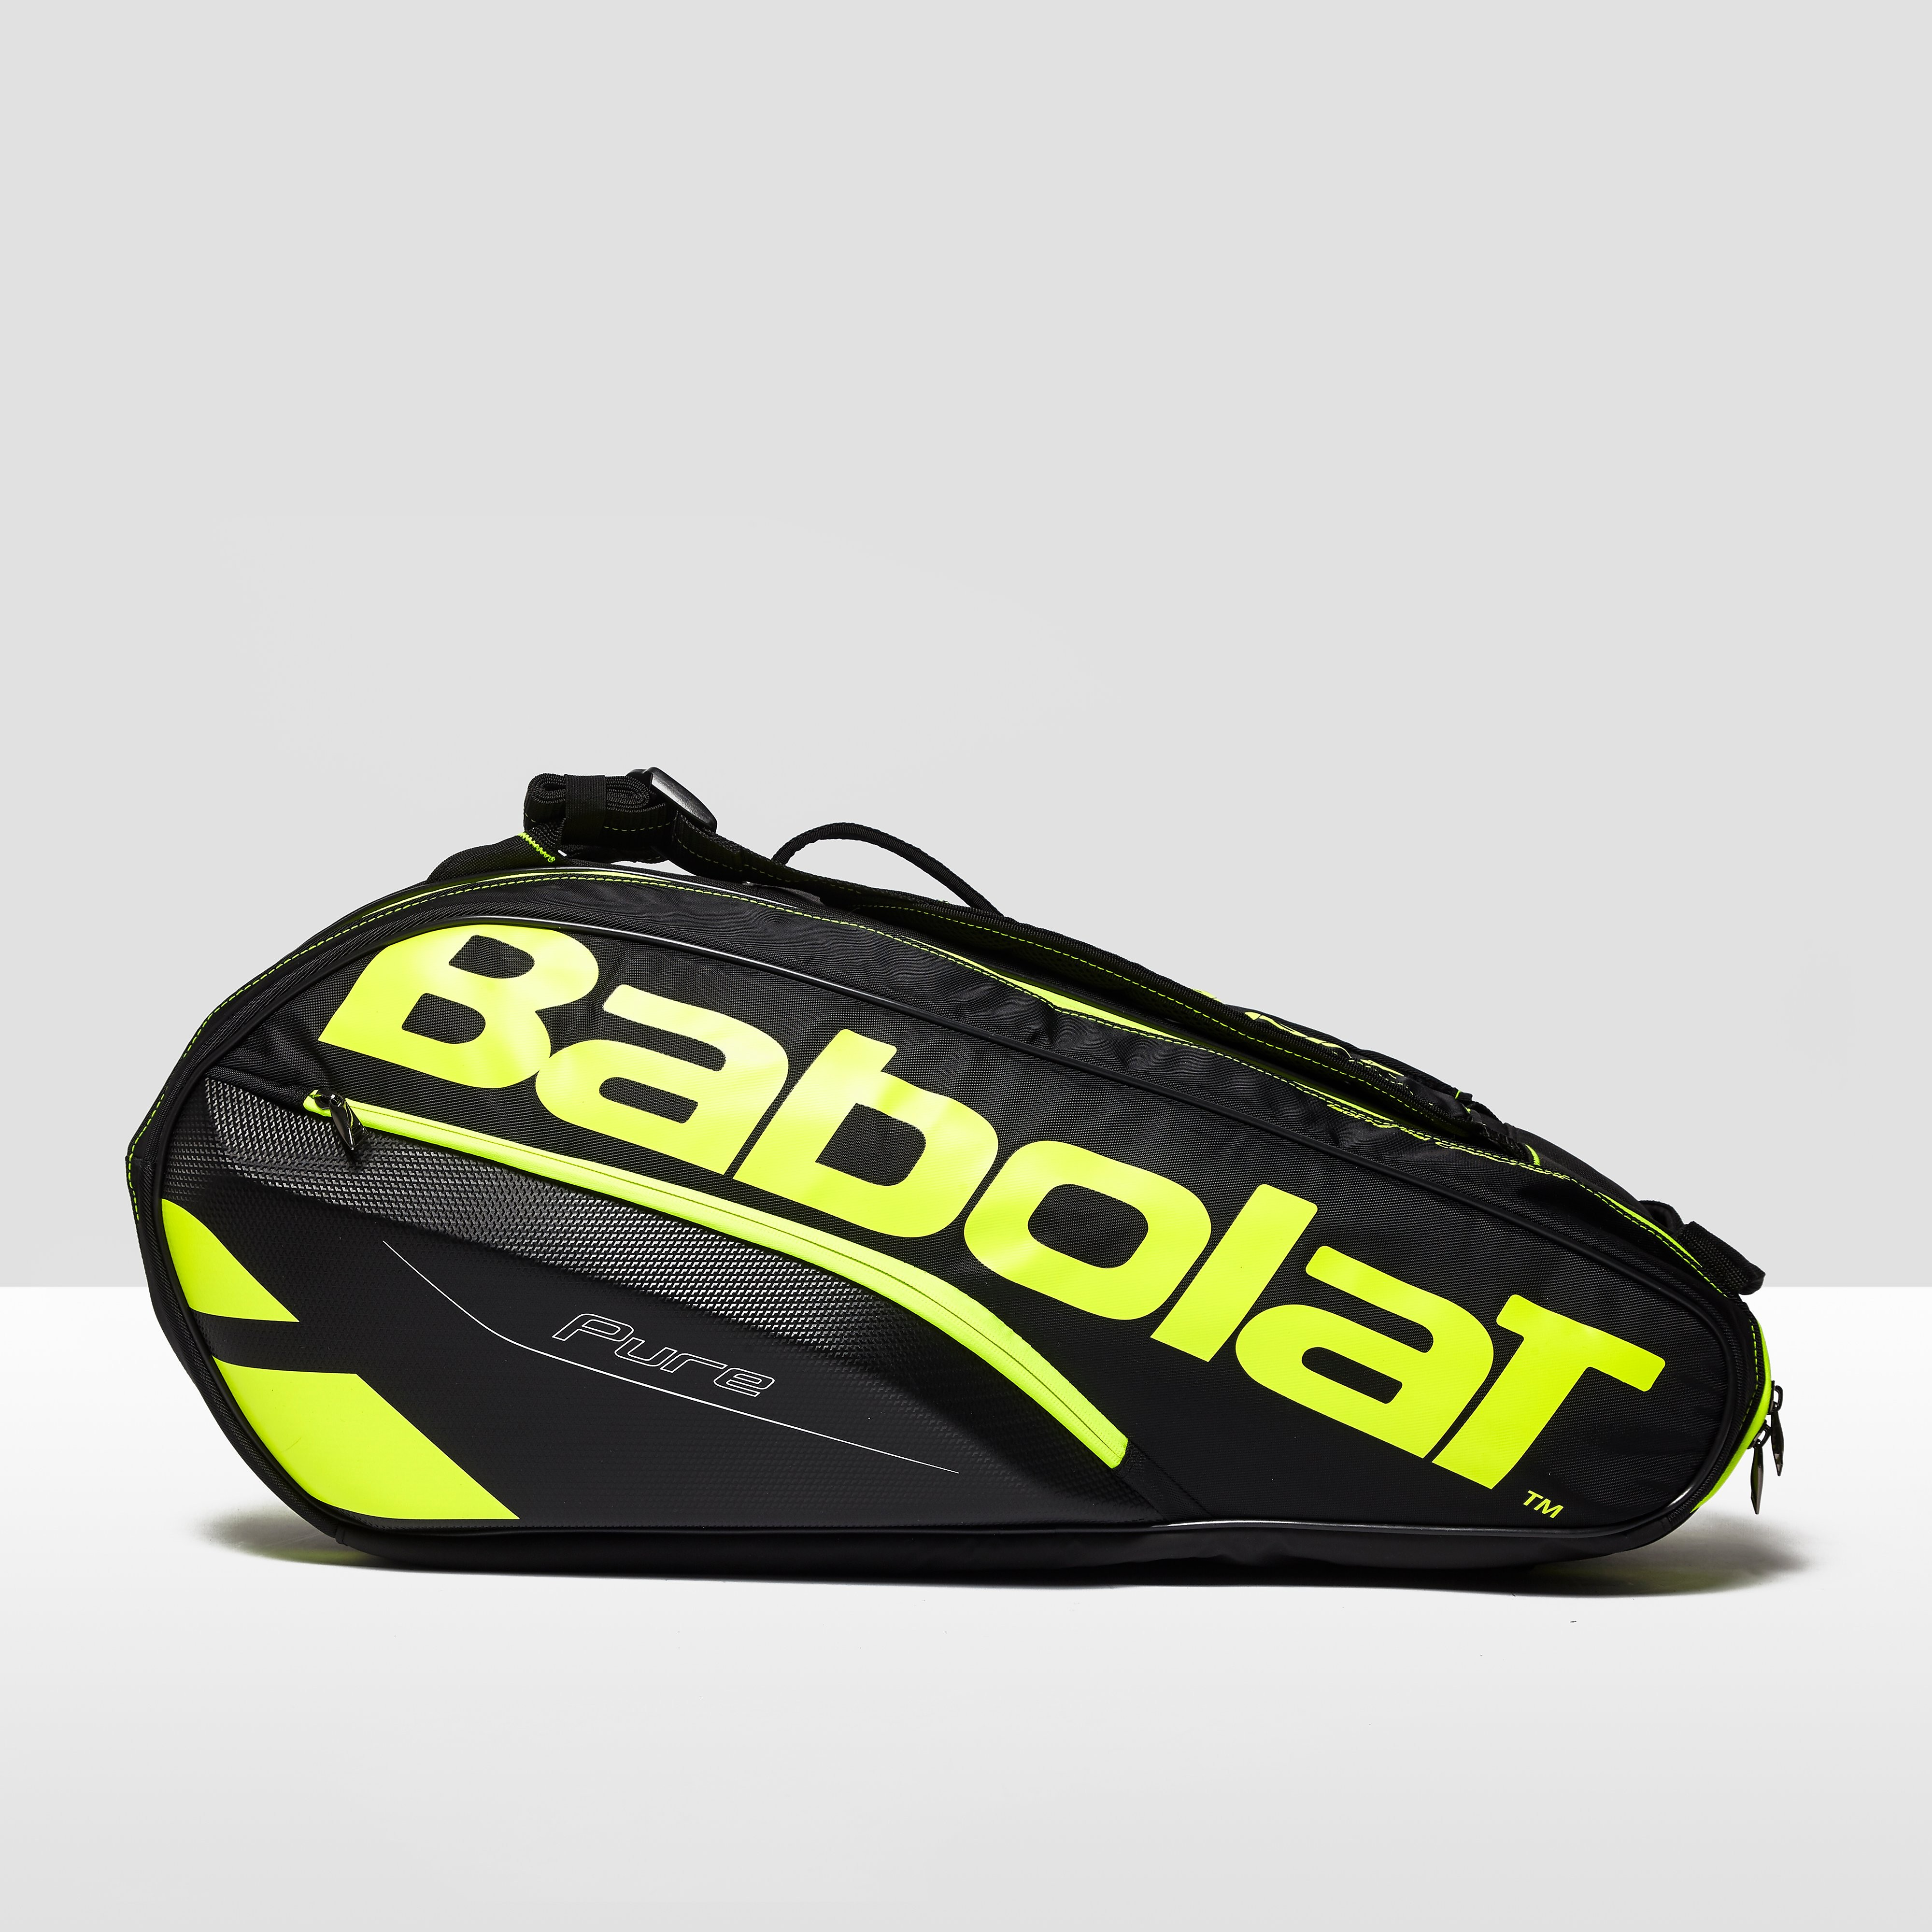 Babolat RH X6 Pure Strike Tennis Racket Bag